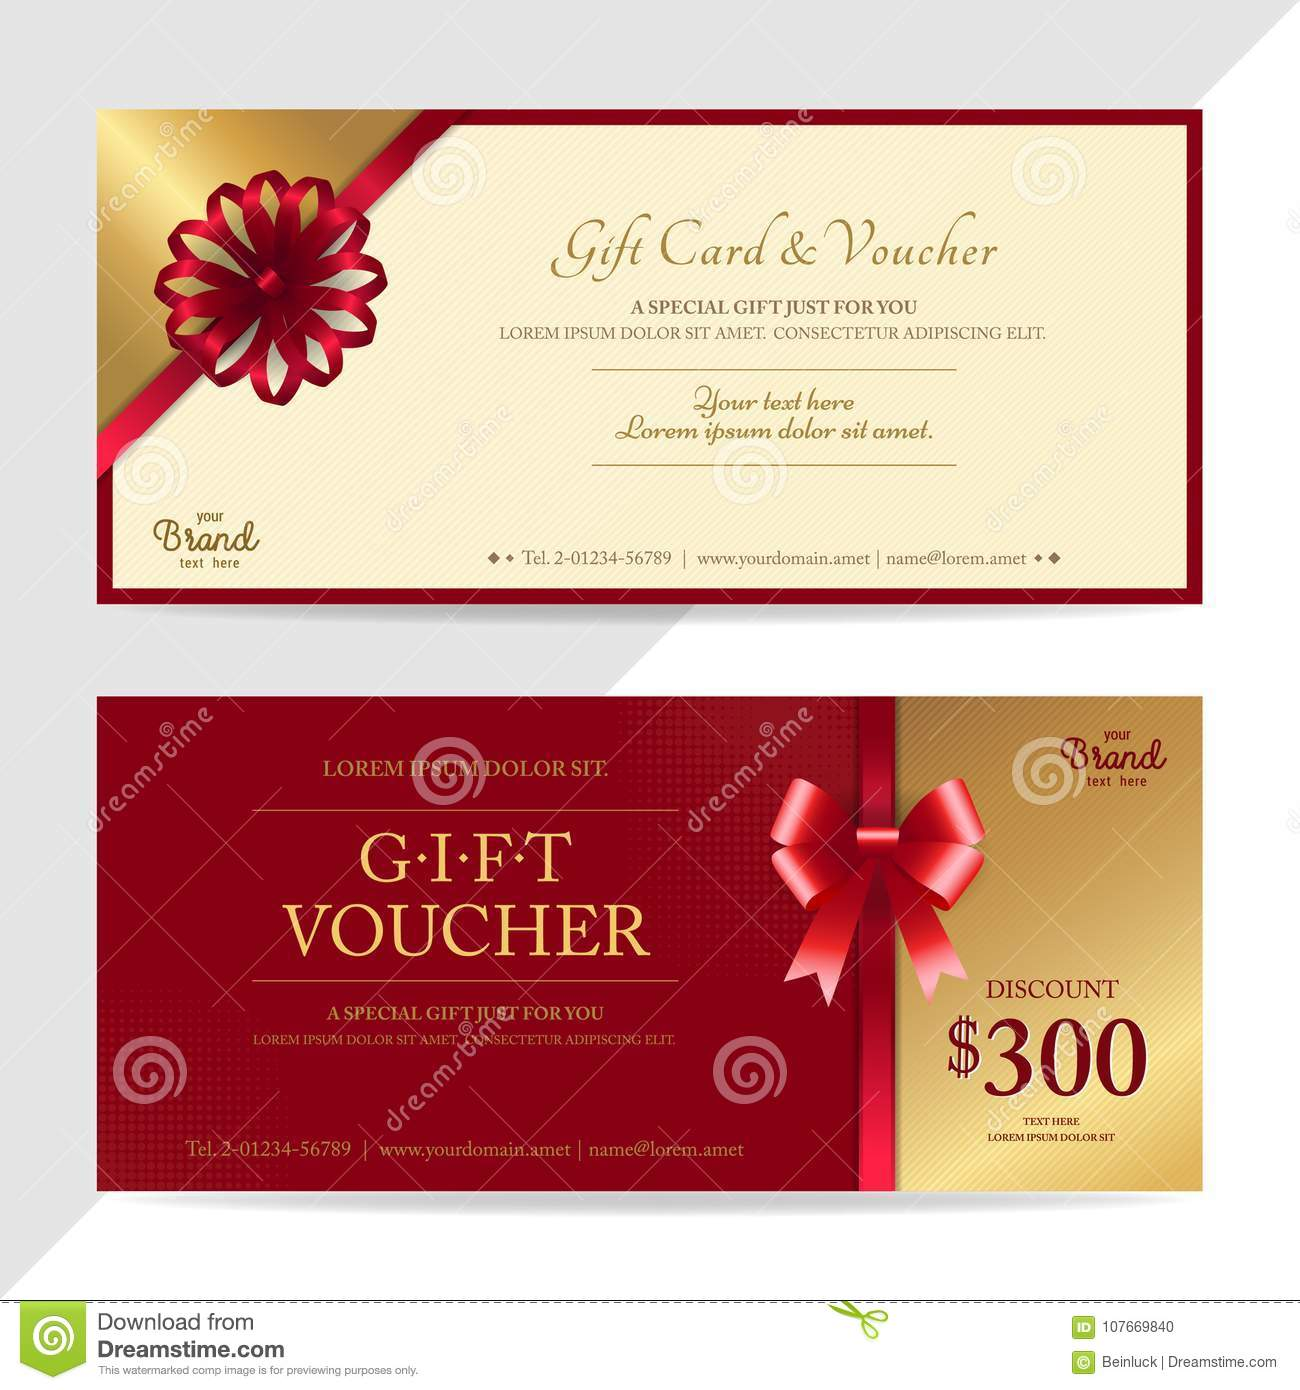 Gift certificate, voucher, gift card or cash coupon template in